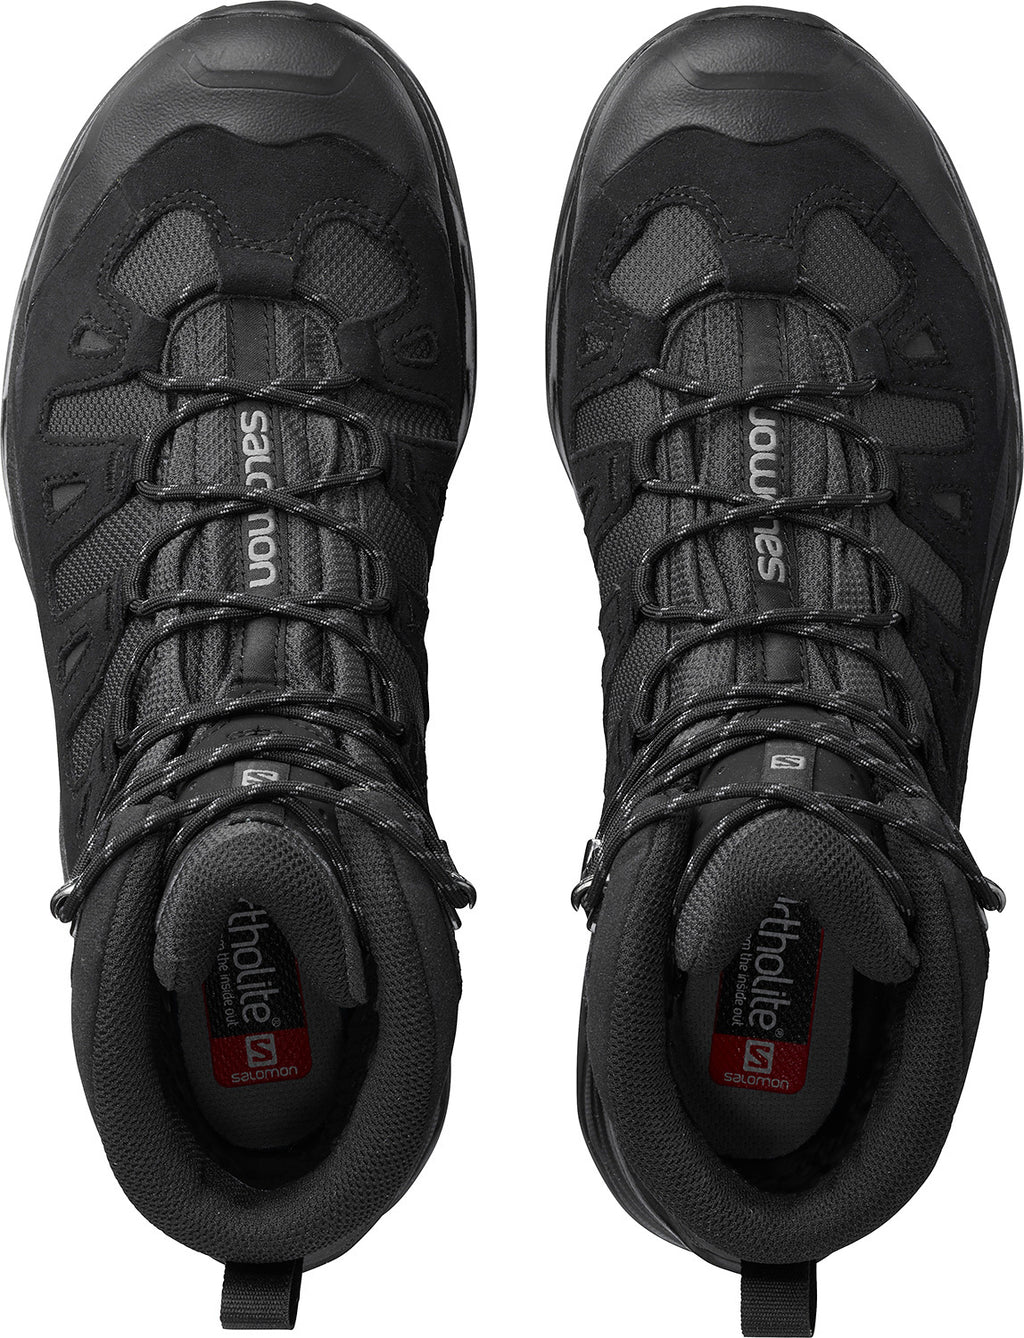 Salomon Quest Prime GTX Men's Hiking Shoes Black Shoes